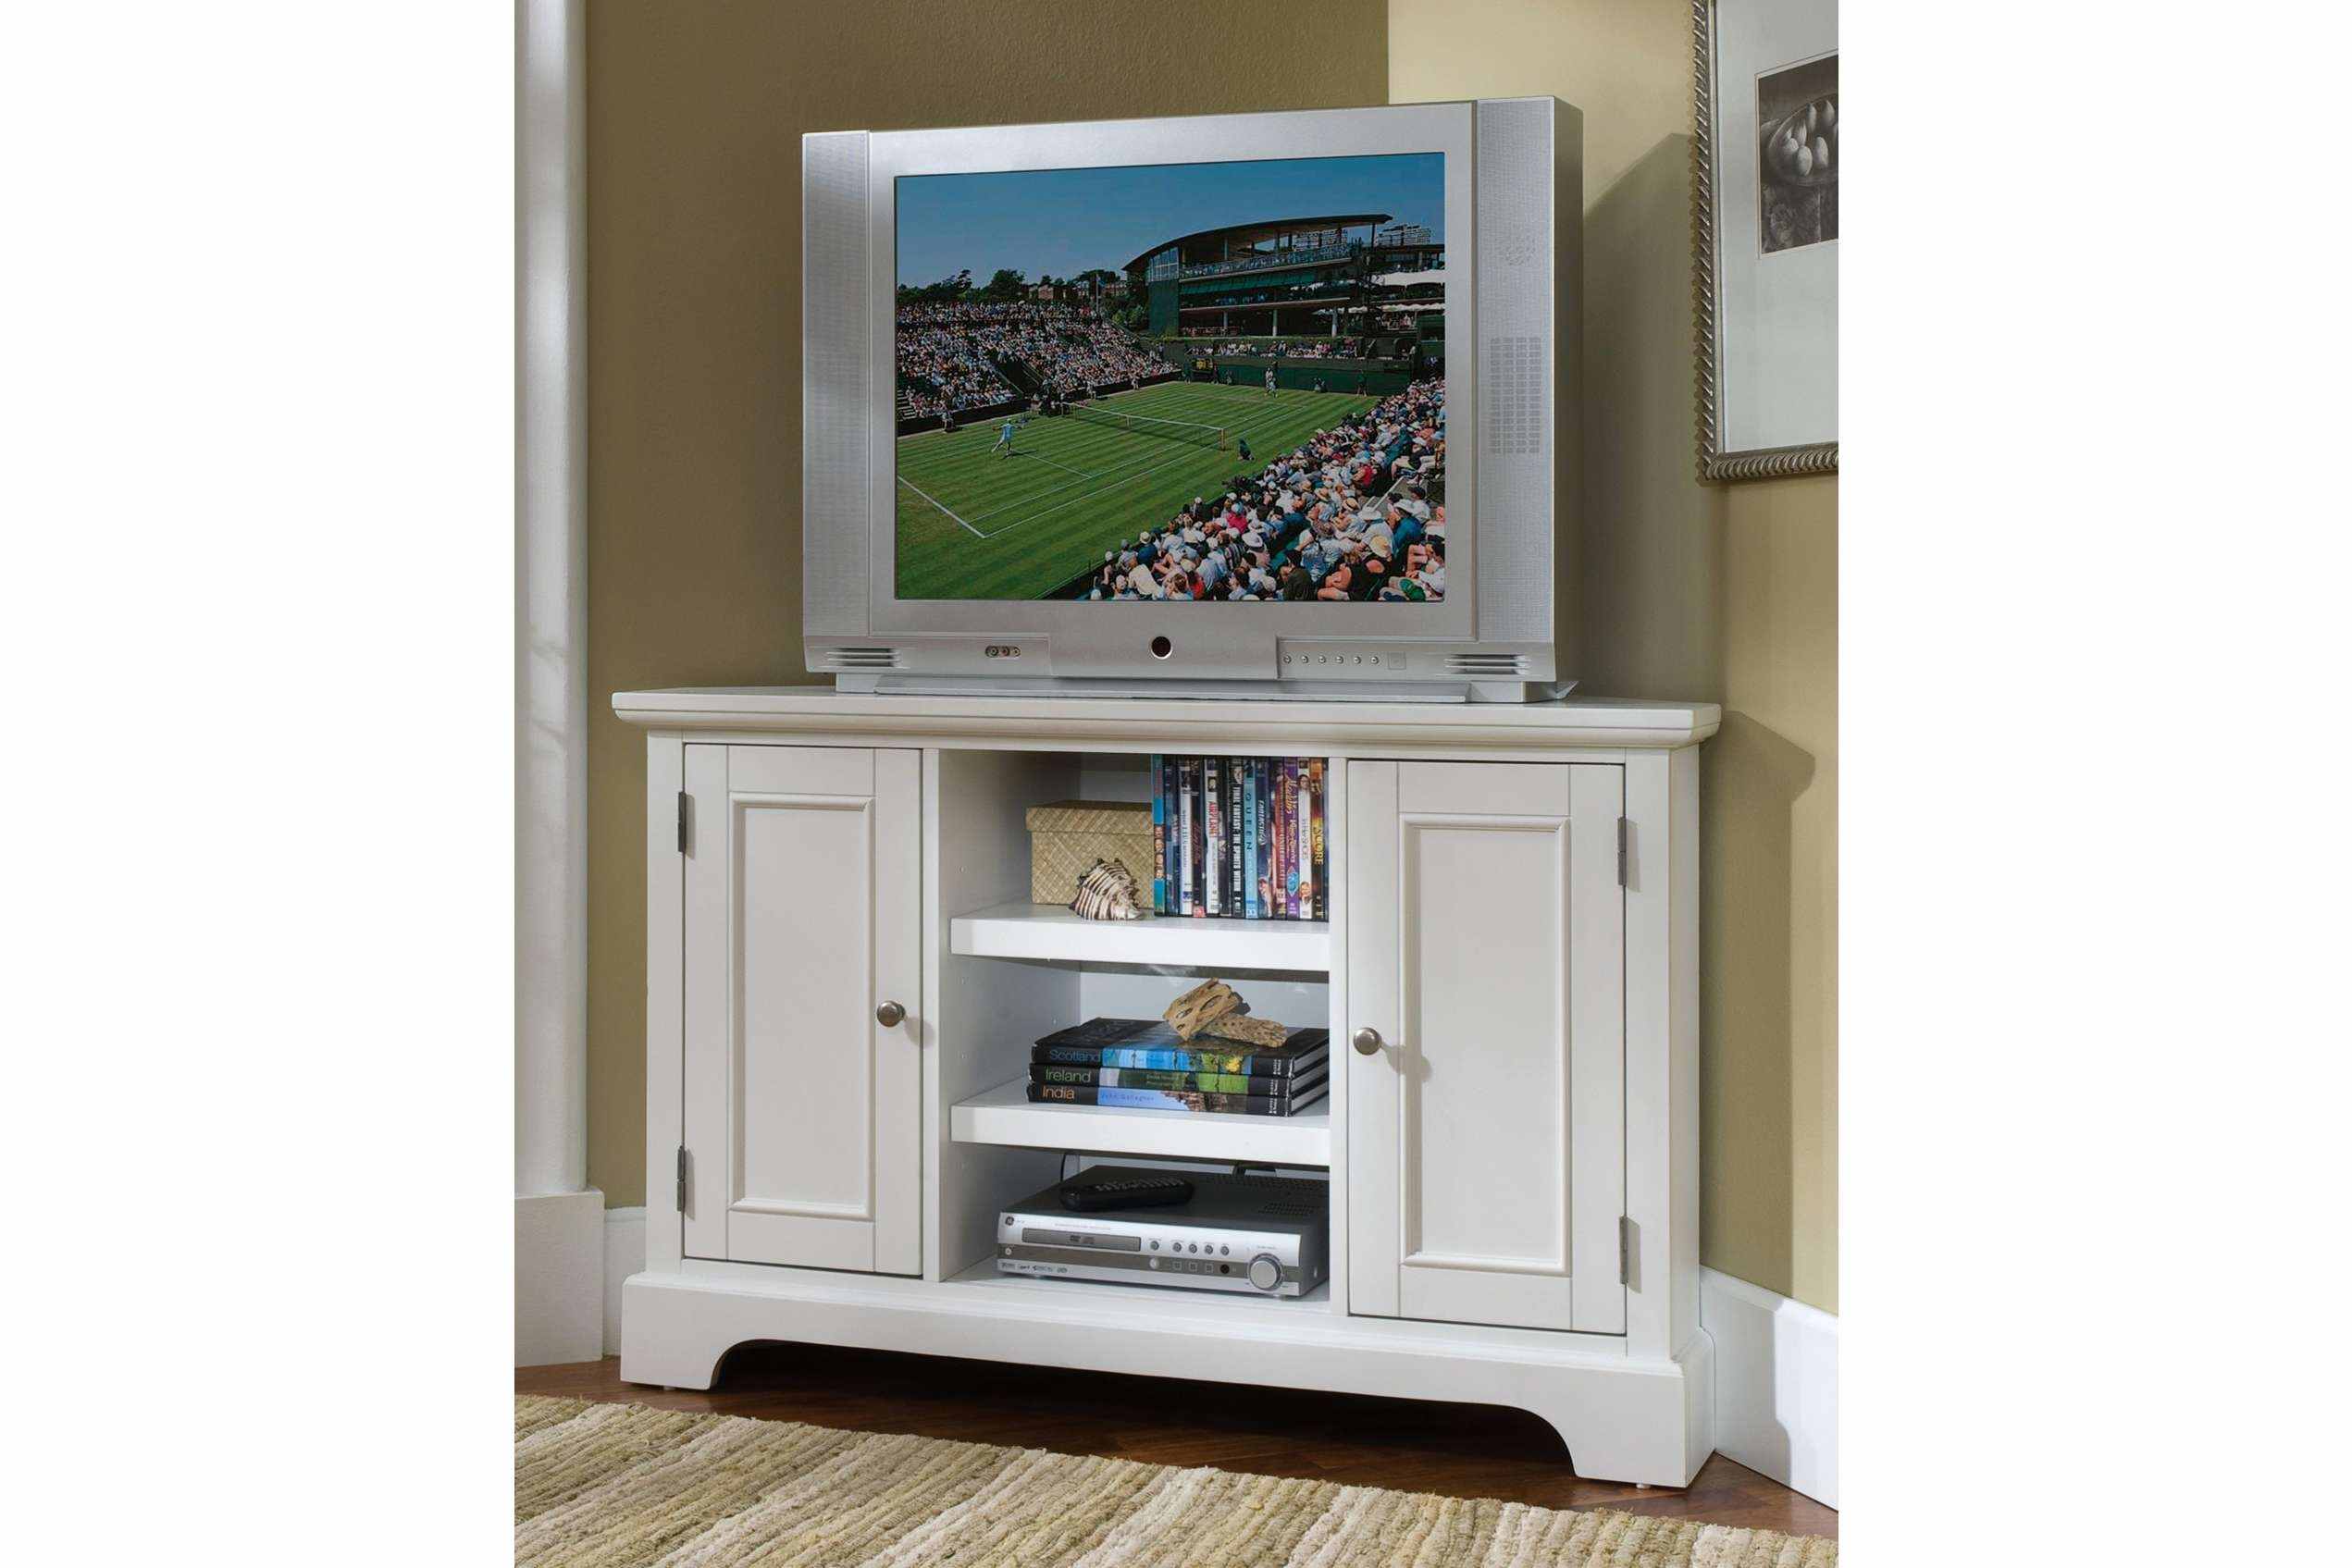 55 Inspirational Corner Tv Stands For Flat Screen Tvs – Home Within Corner Tv Cabinets For Flat Screens (View 1 of 20)